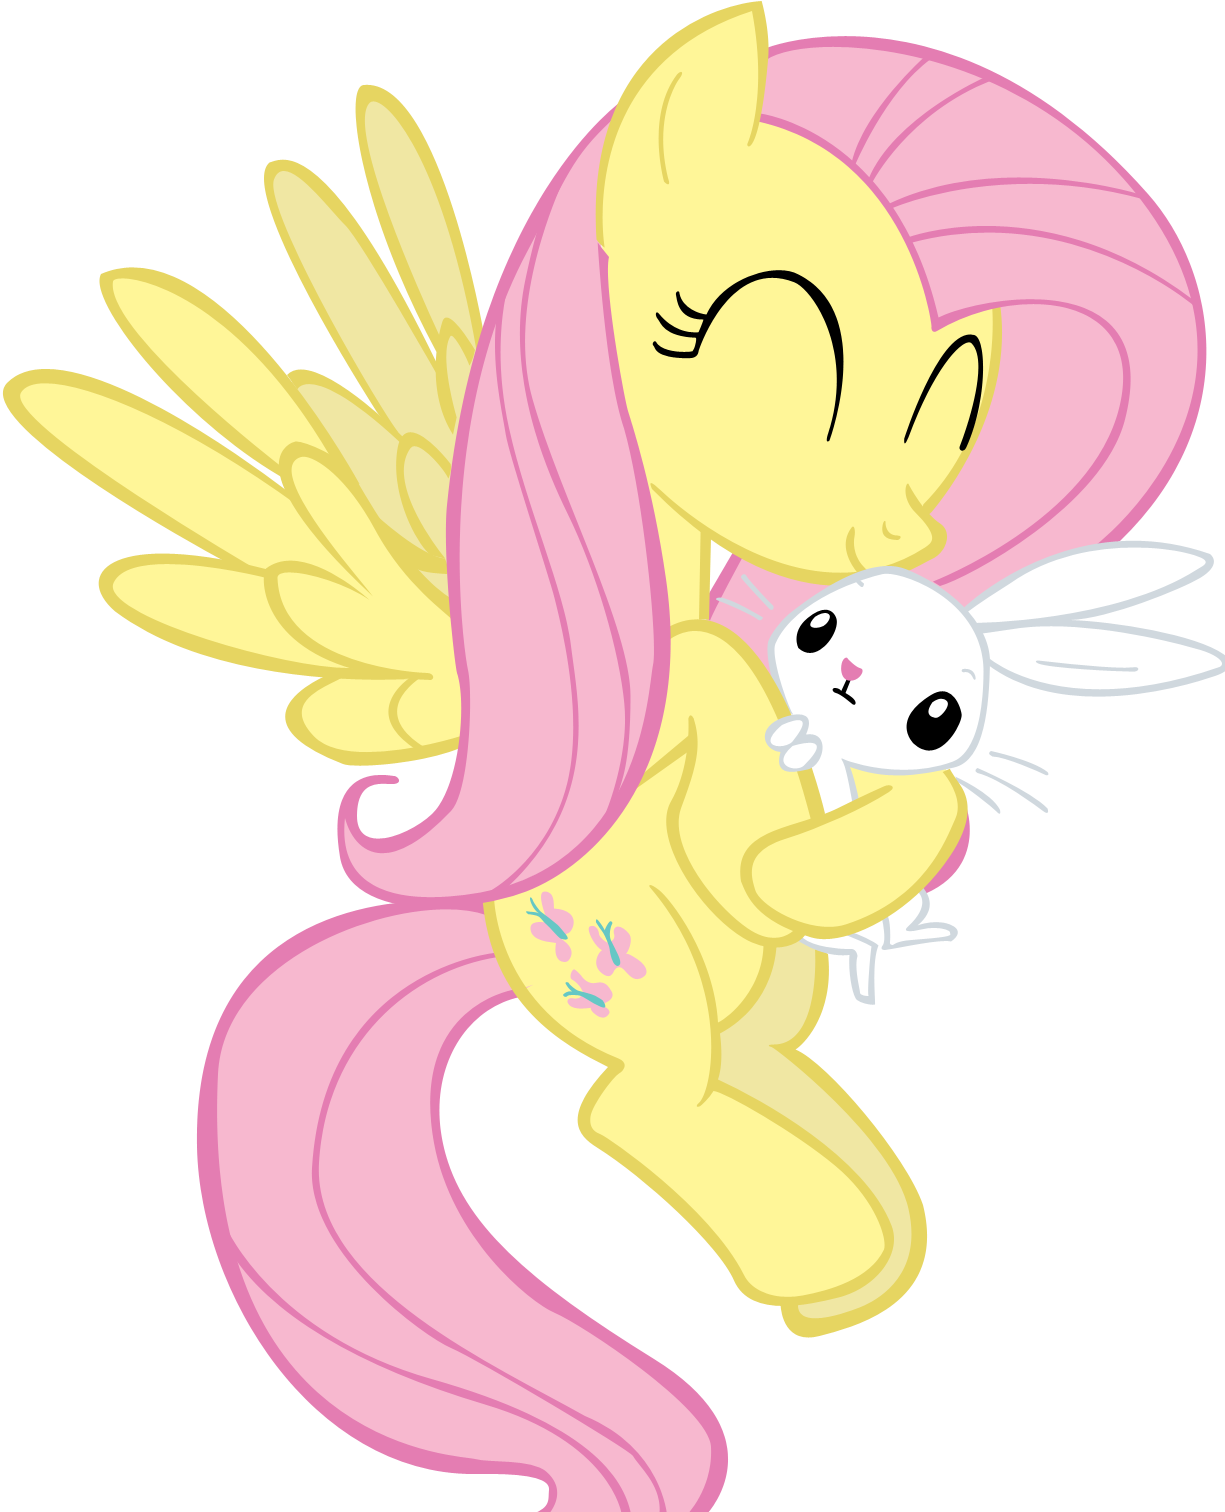 Fluttershy Holding Angel... By Jlee104 On DeviantArt